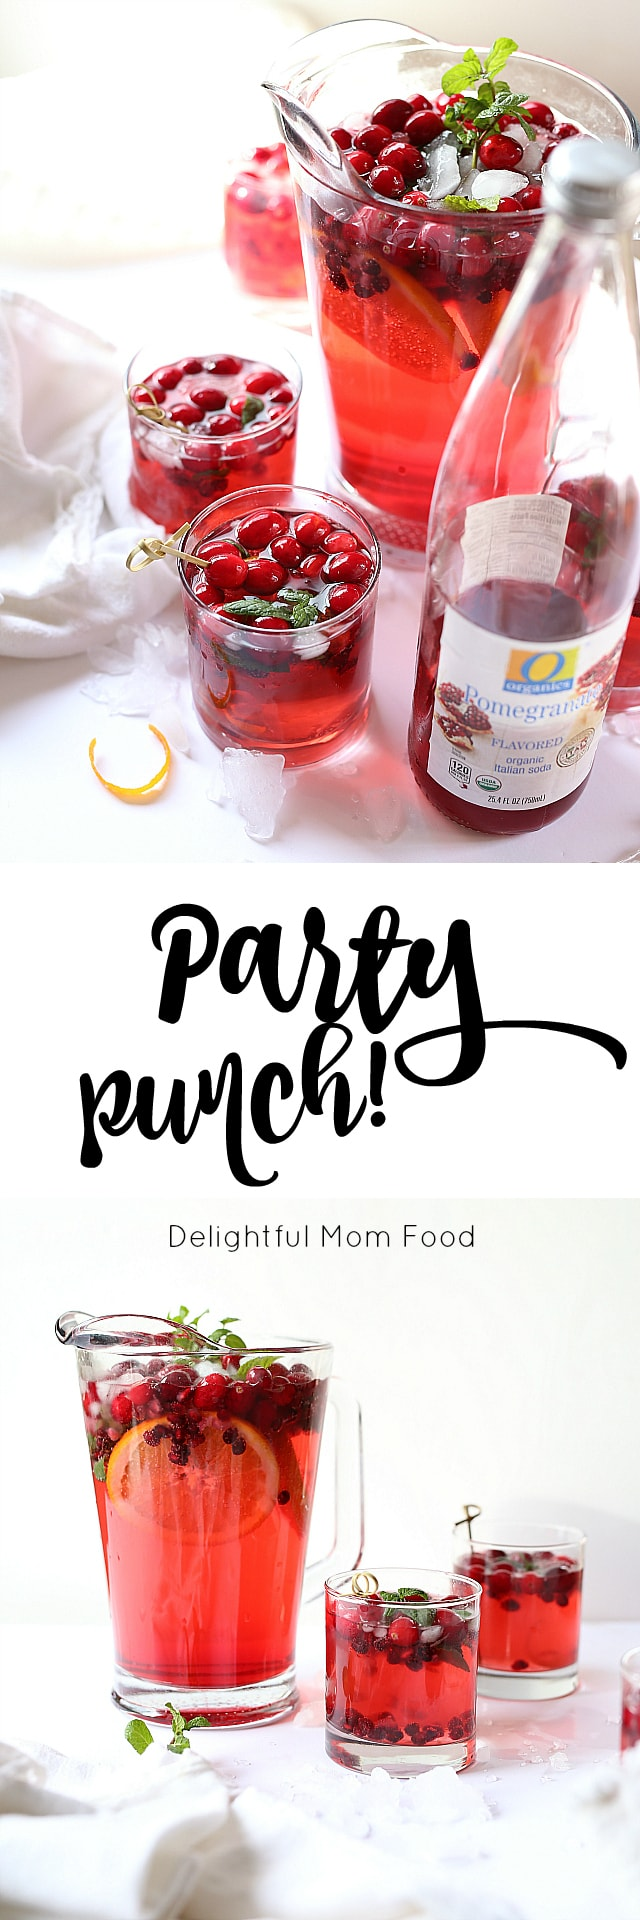 Party Punch Recipes For Any Holiday Or Party